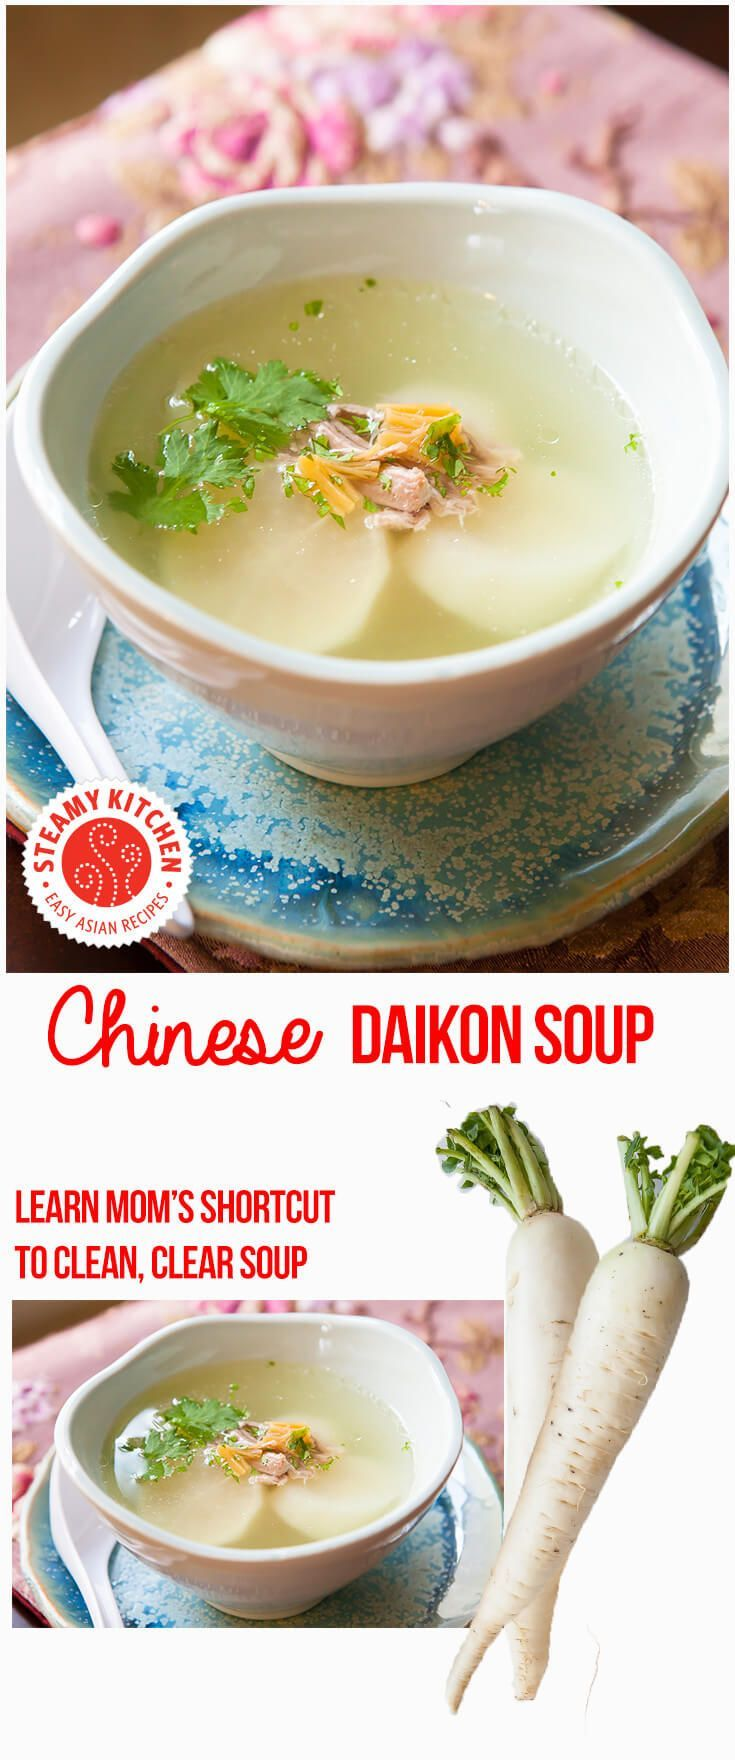 Learn to make this Chinese Daikon Soup recipe - plus Mom's secret to clean, clear broth. ~ http://steamykitchen.com